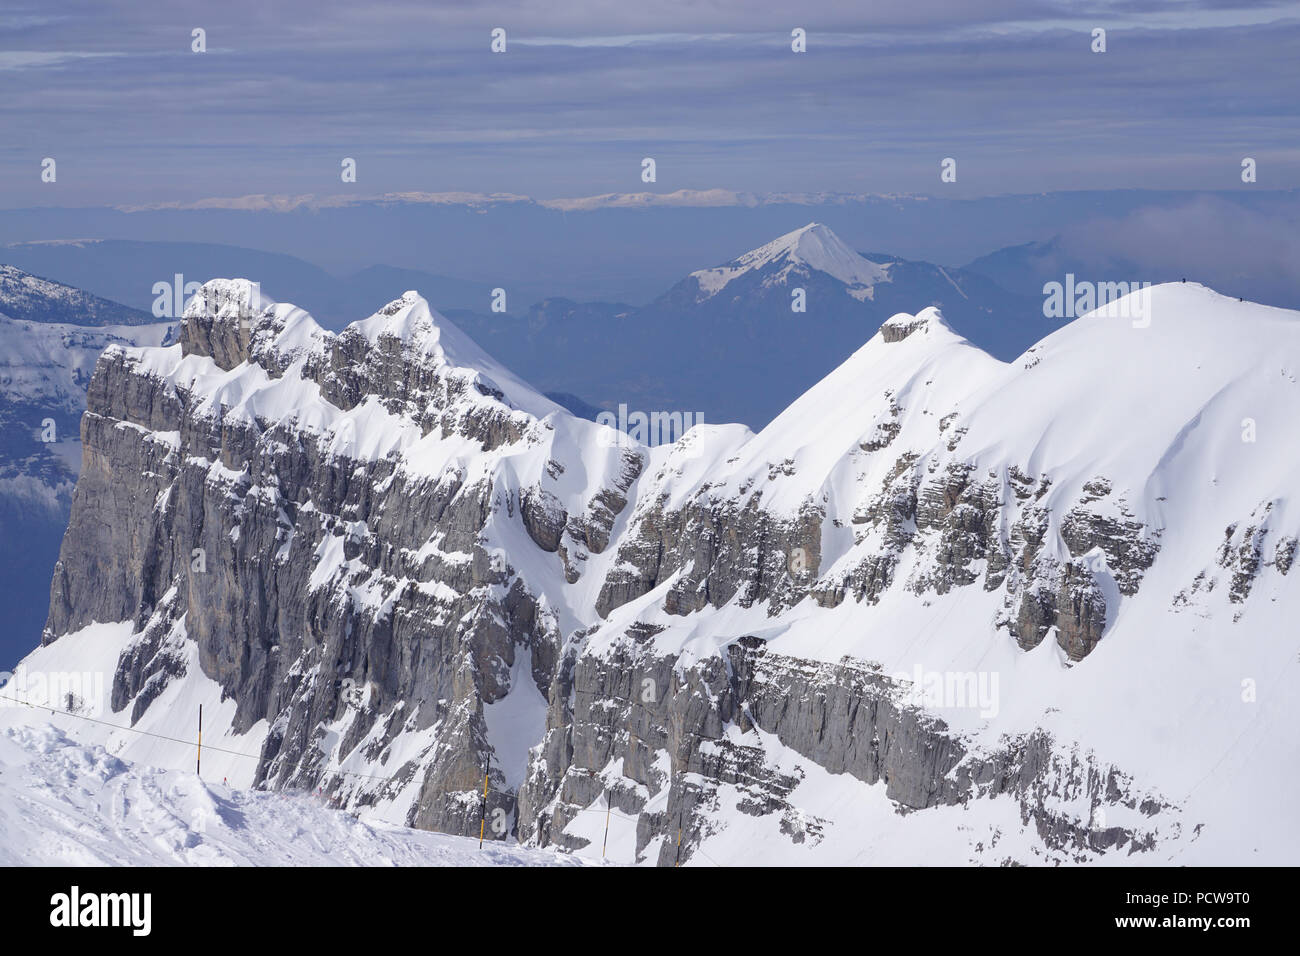 Bird eye view of the rocky snowy outcrop on a perfect clear skiing day in the Alps, France and the valley below with other mountain ranges - Stock Image